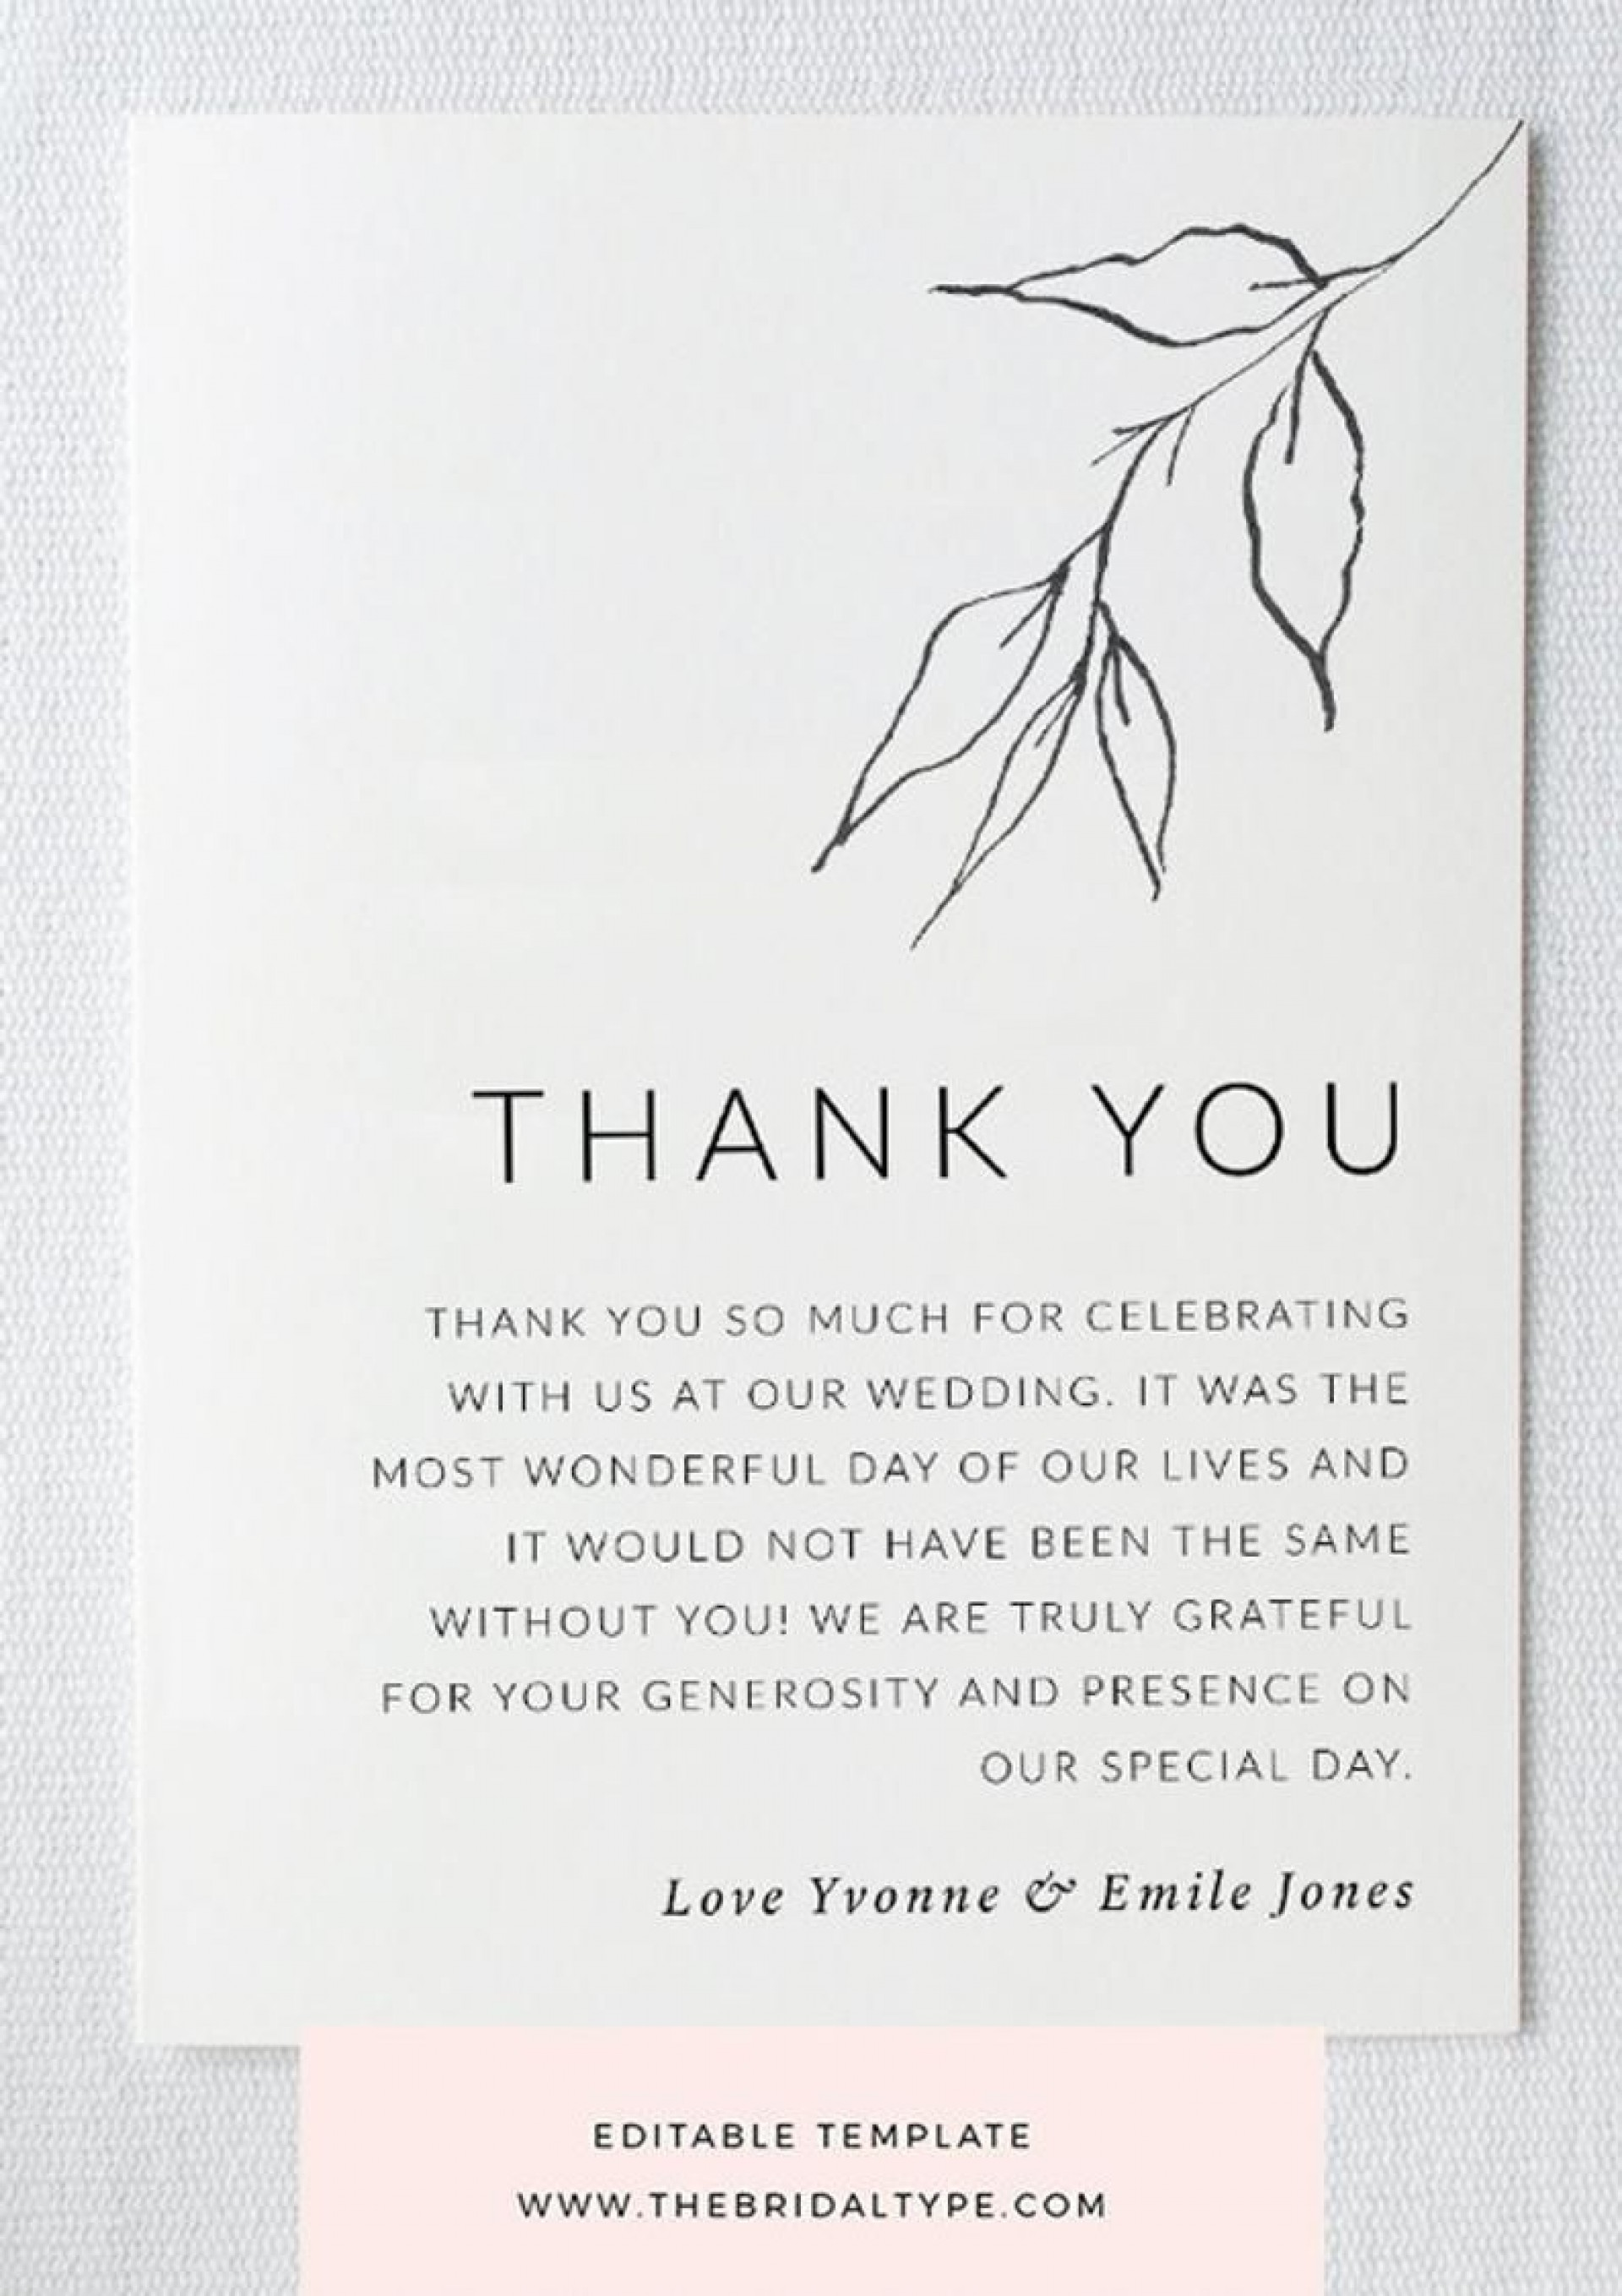 004 Unbelievable Wedding Thank You Card Template High Definition  Message Sample Free Download Wording For Money1920